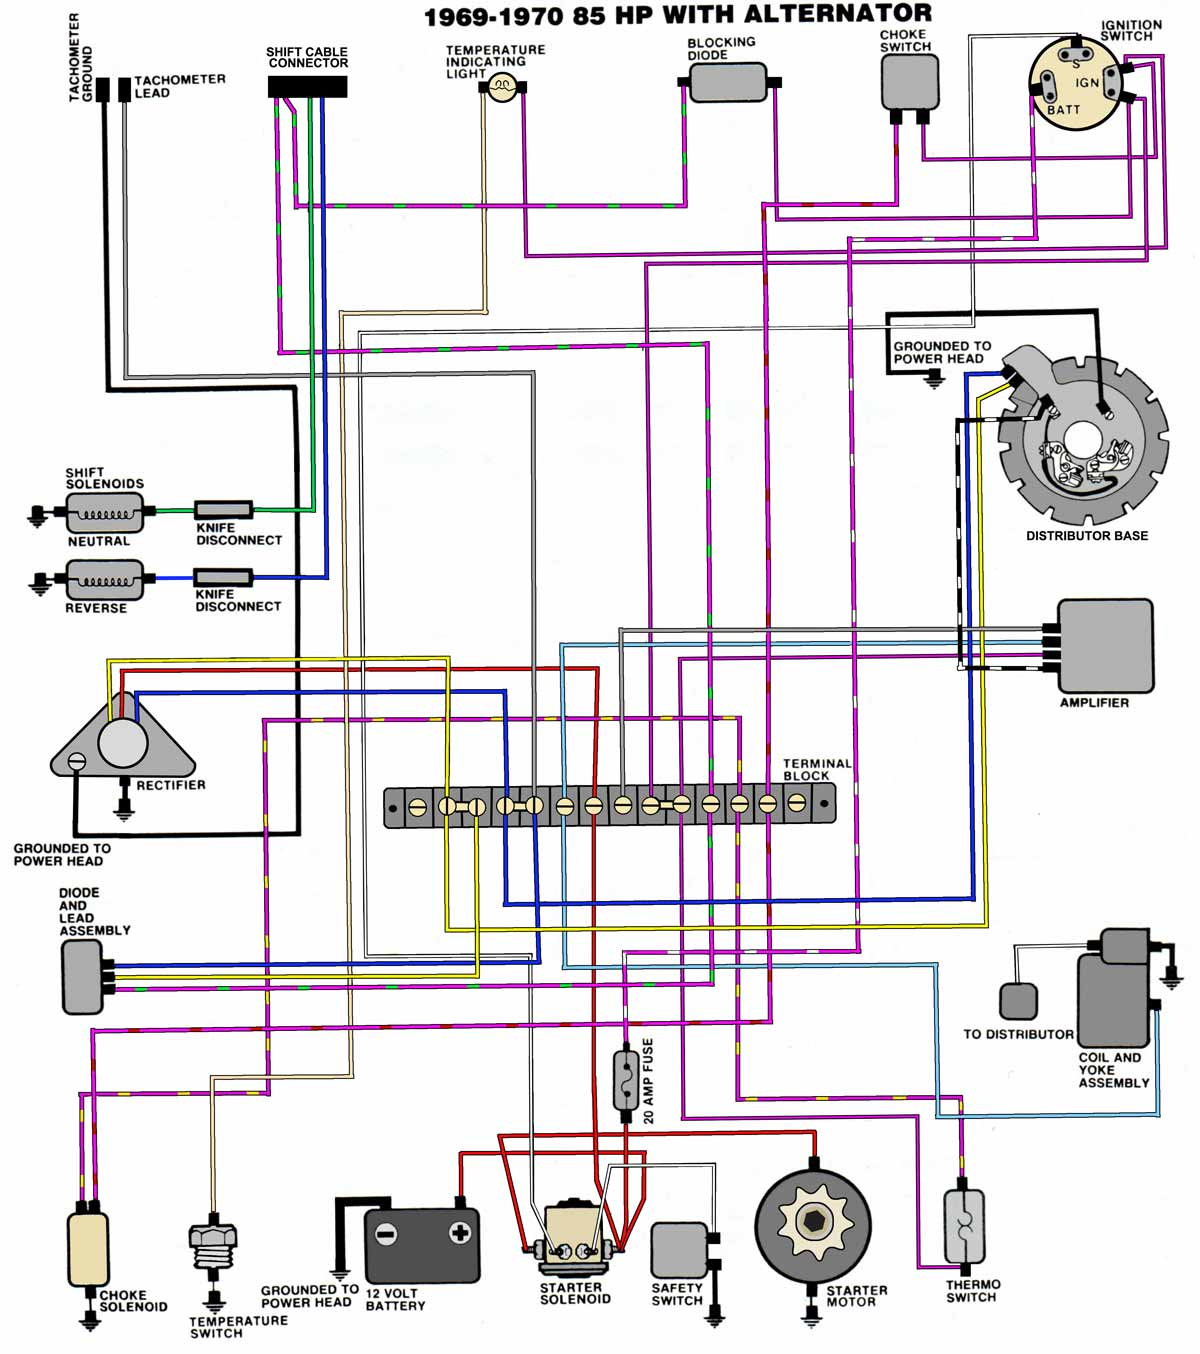 johnson boat motor diagram newmotorspot co rh newmotorspot co